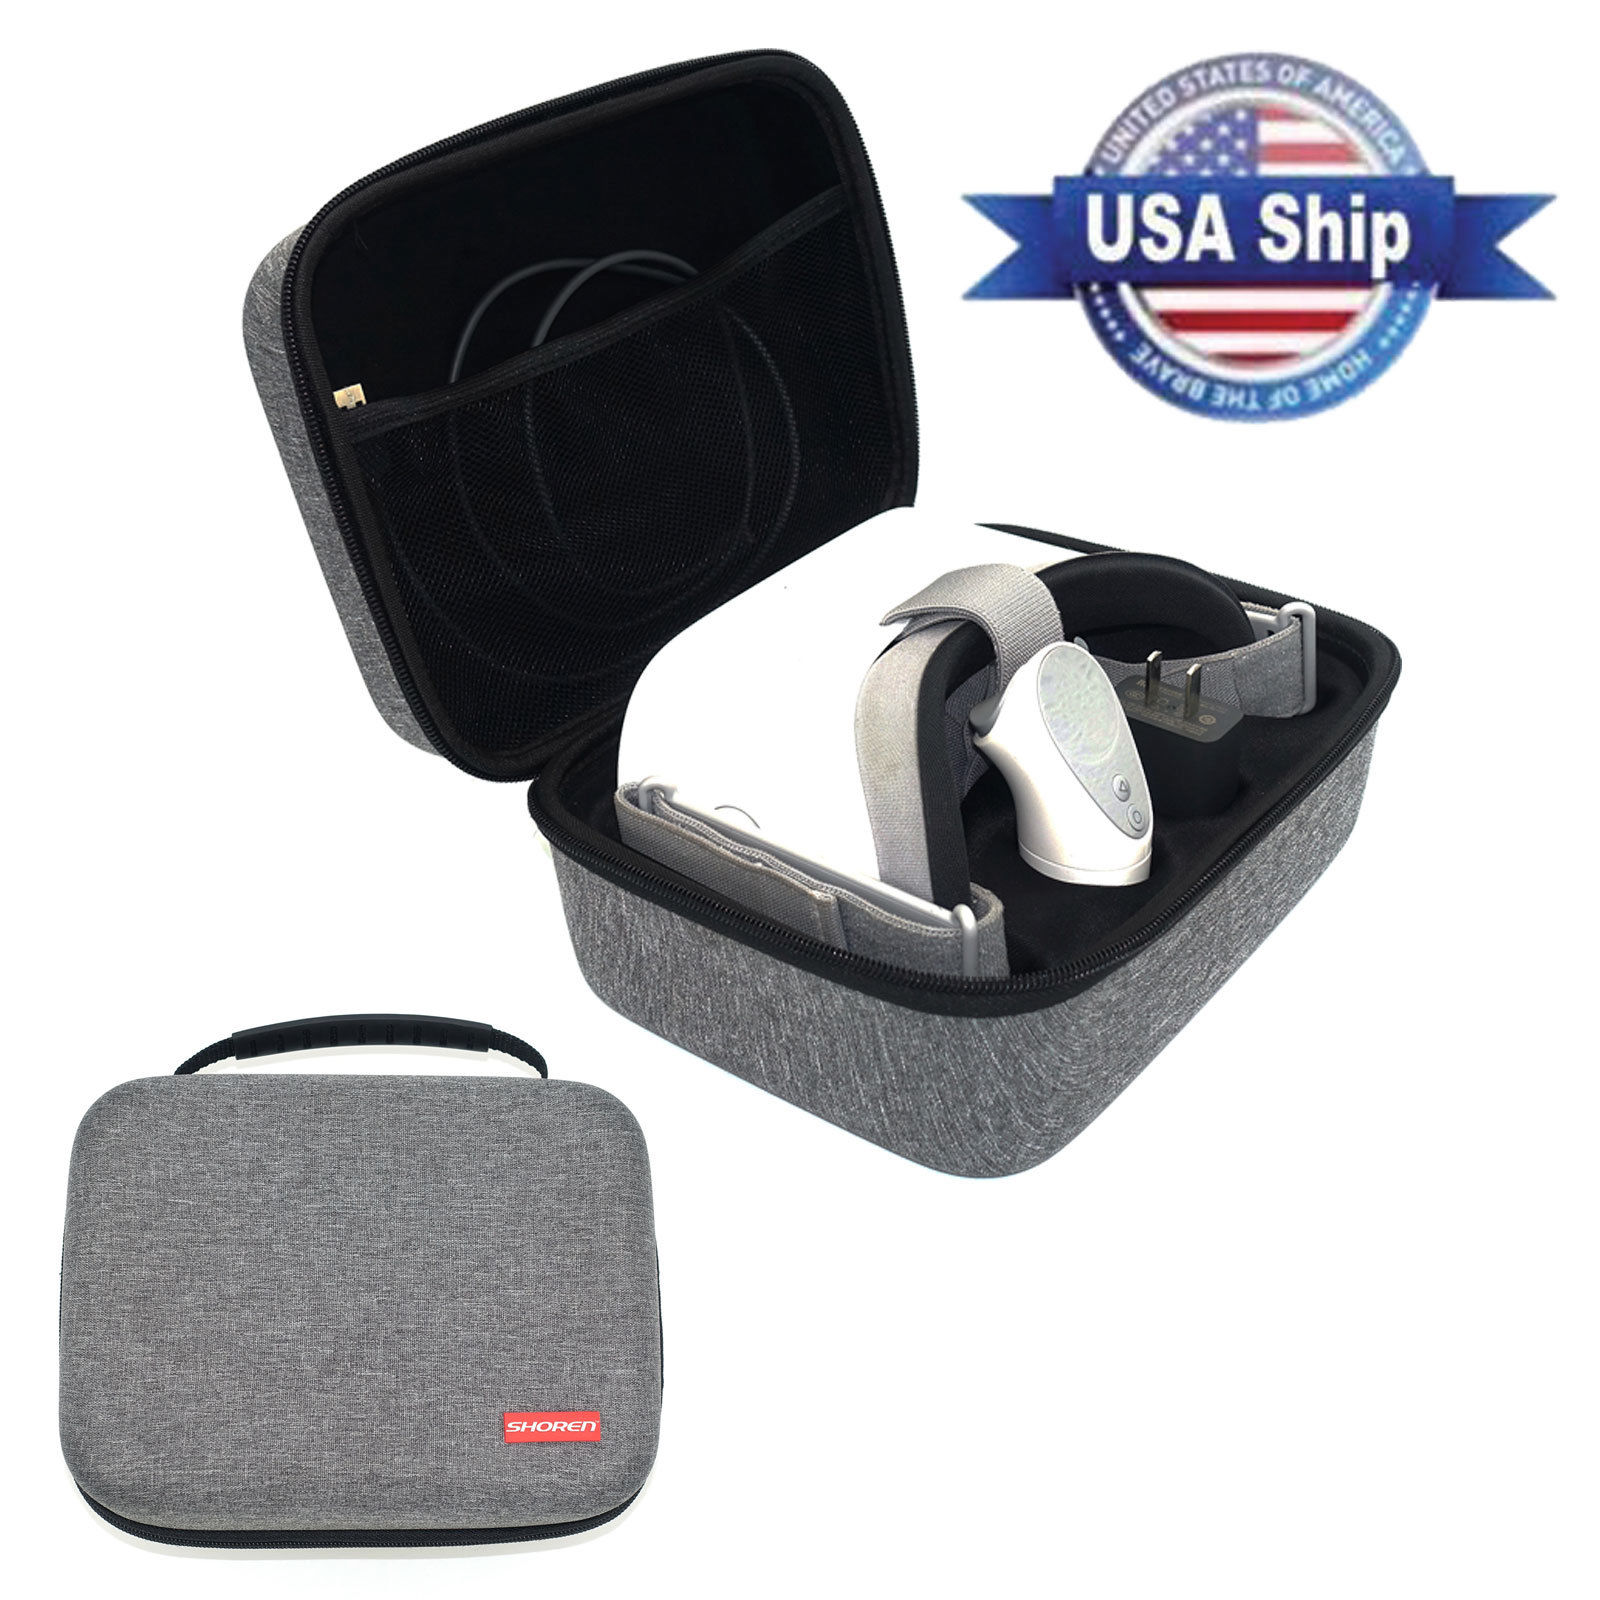 Hard Storage Case Travel Carrying Bag Box For Oculus Go VR Headset